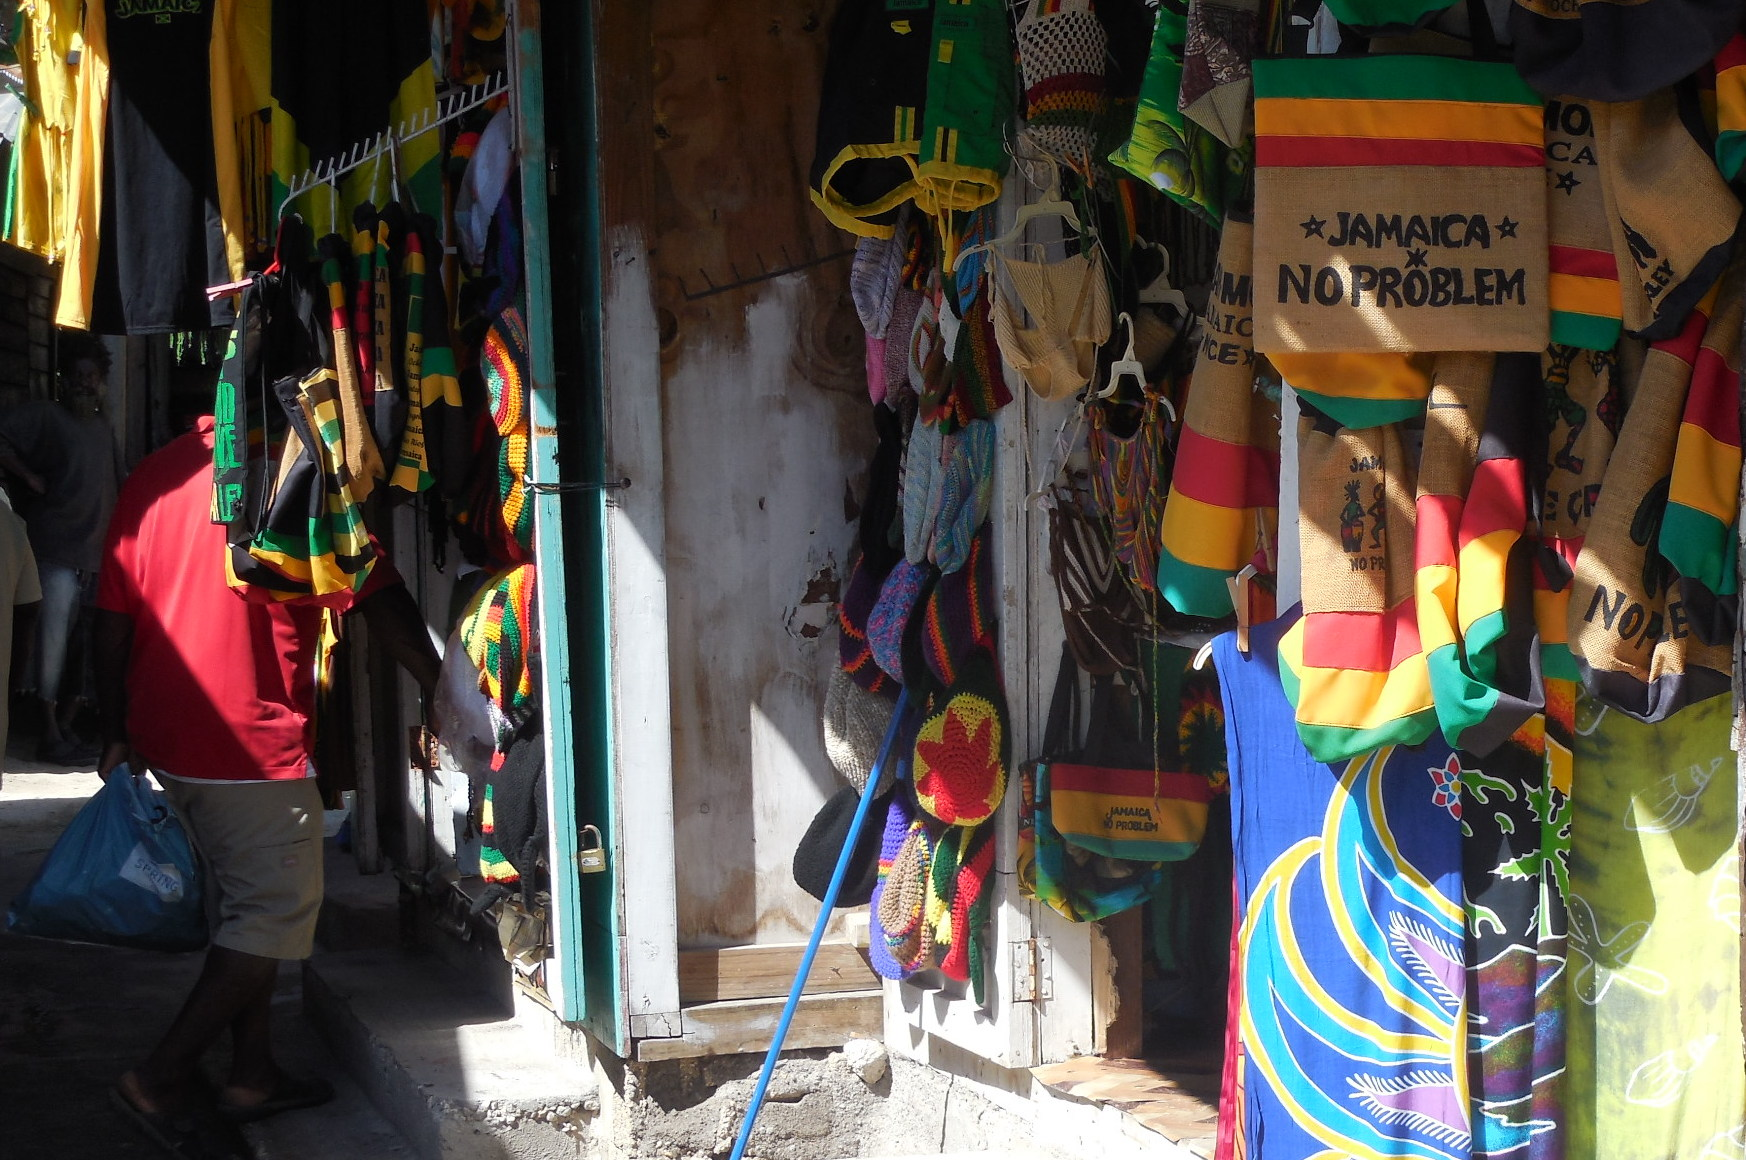 Jamaican clothing stores